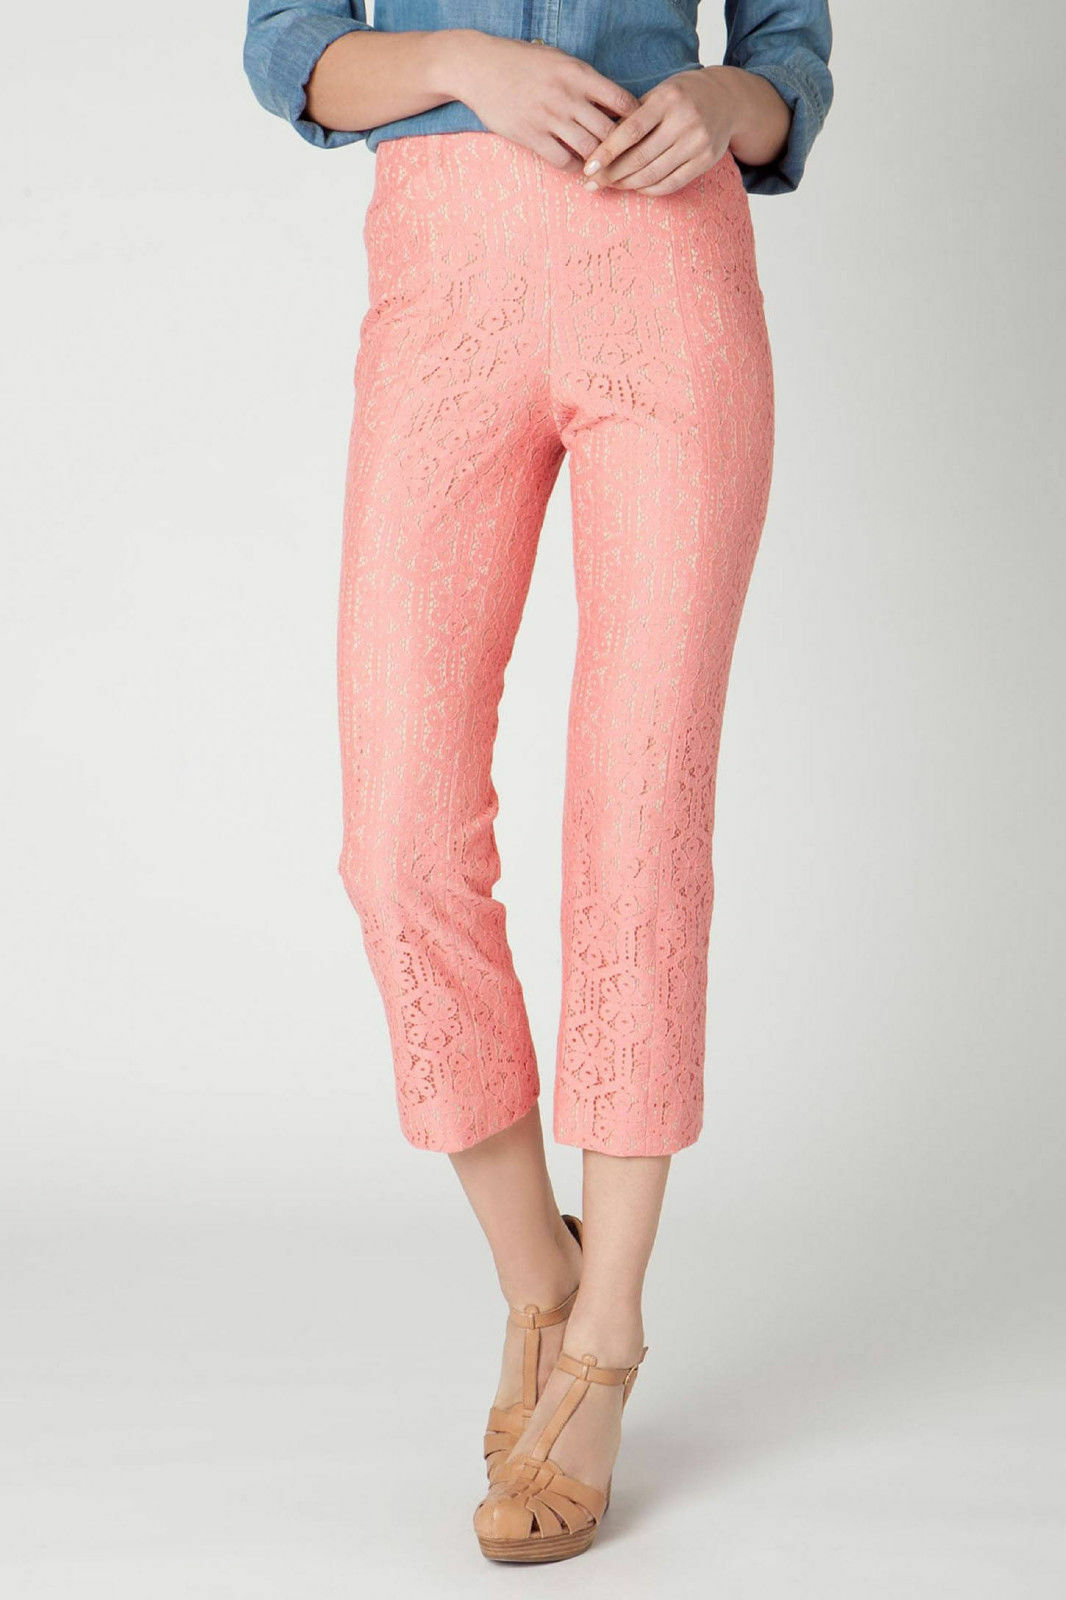 Anthropologie Pants Trousers Youghal Crops Lace Cropped Corey Lynn Calter, Sz 12